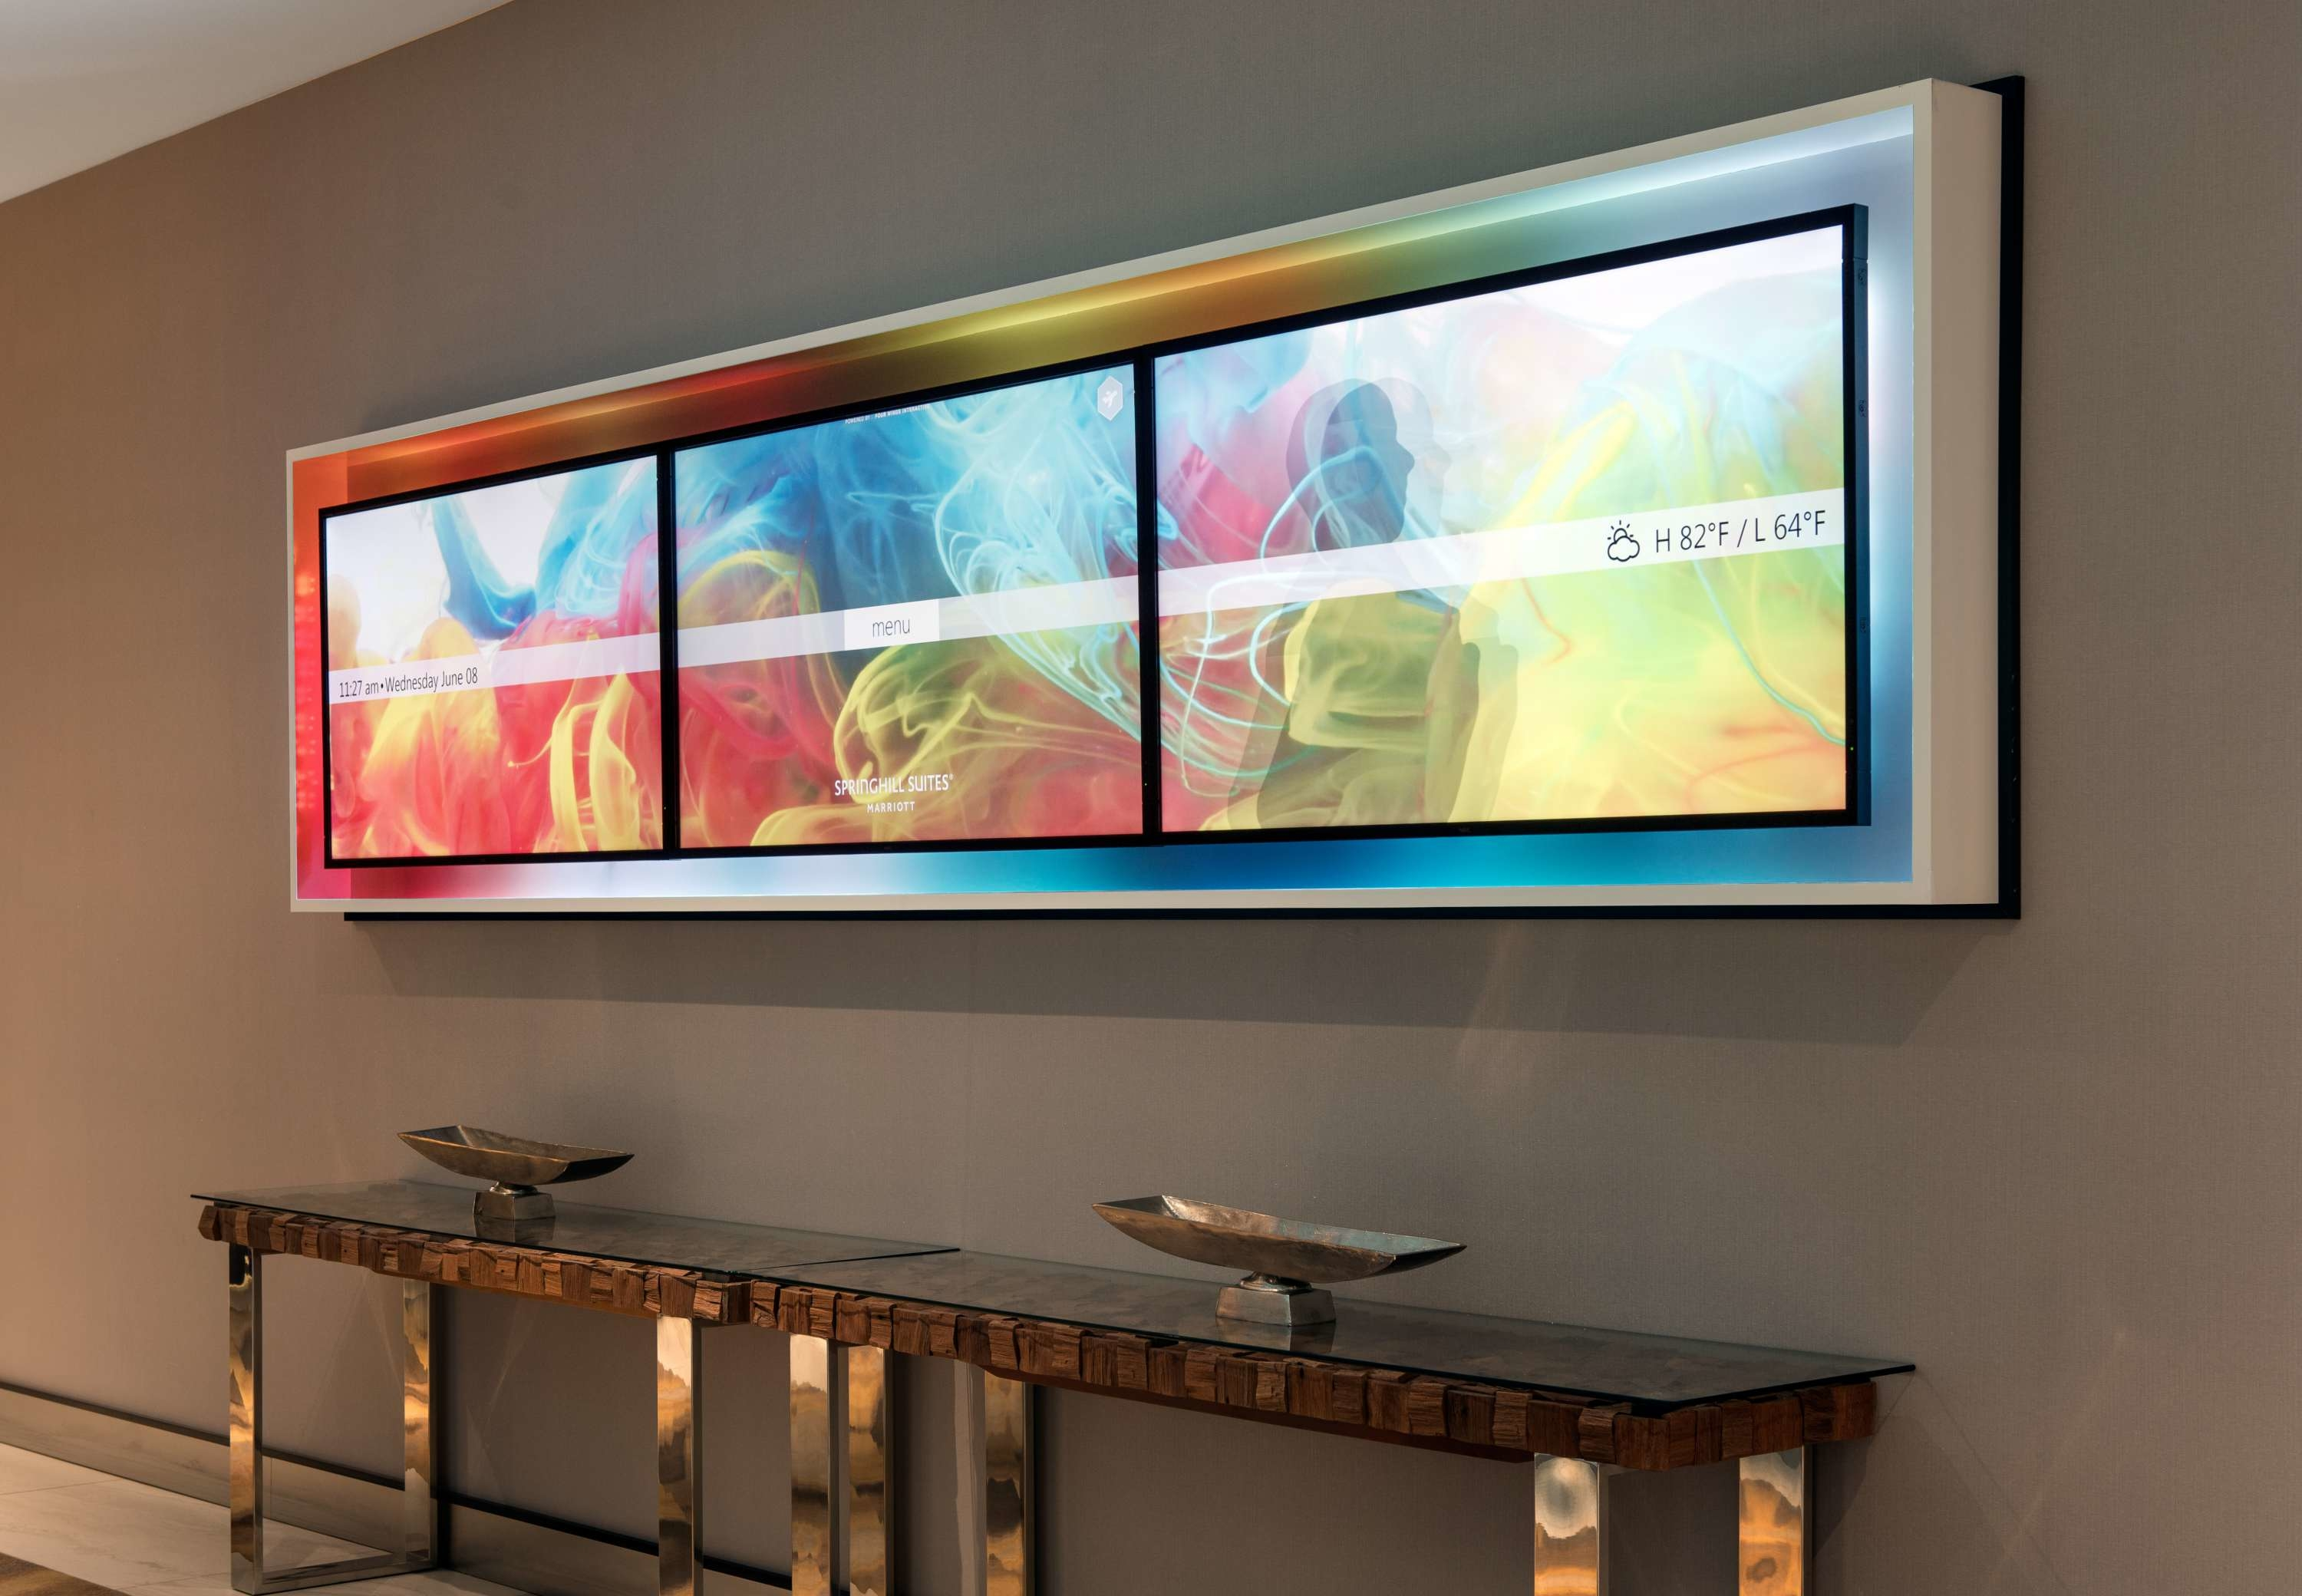 Digital Art Wall - At SpringHill Suites Los Angeles Burbank/Downtown, we constantly strive to push the envelope on innovation and technology. Located in the foyer, this sleek digital board provides up